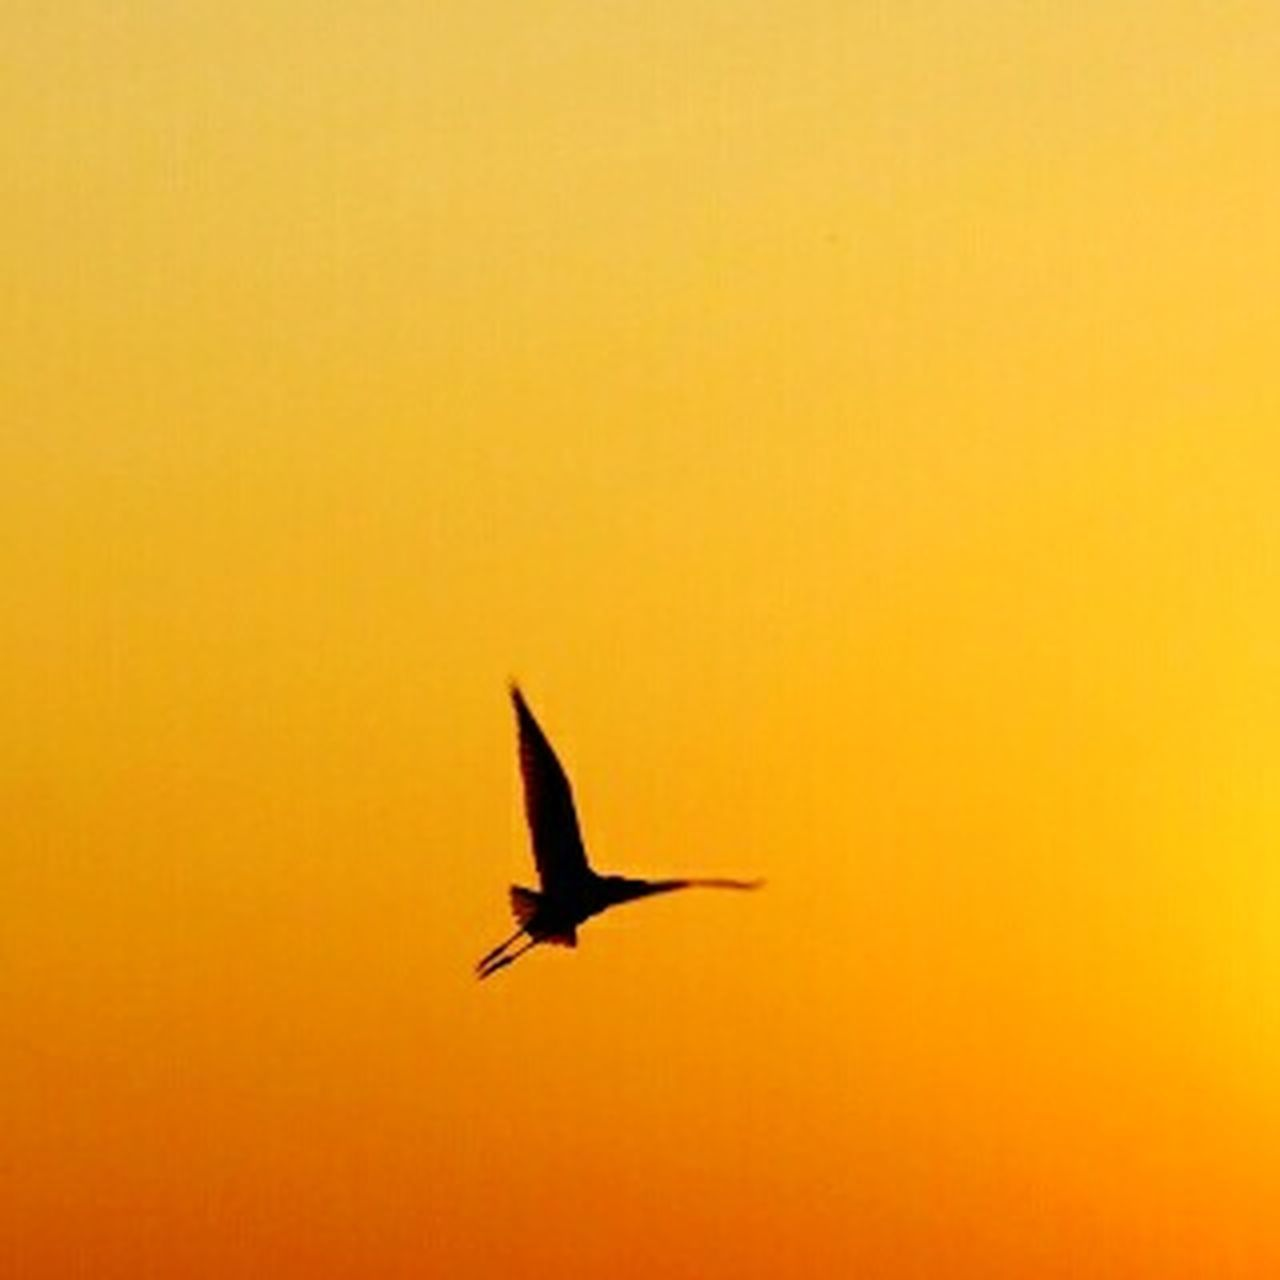 bird, animals in the wild, flying, animal wildlife, one animal, sunset, silhouette, animal themes, no people, nature, outdoors, yellow, spread wings, beauty in nature, day, sky, bird of prey